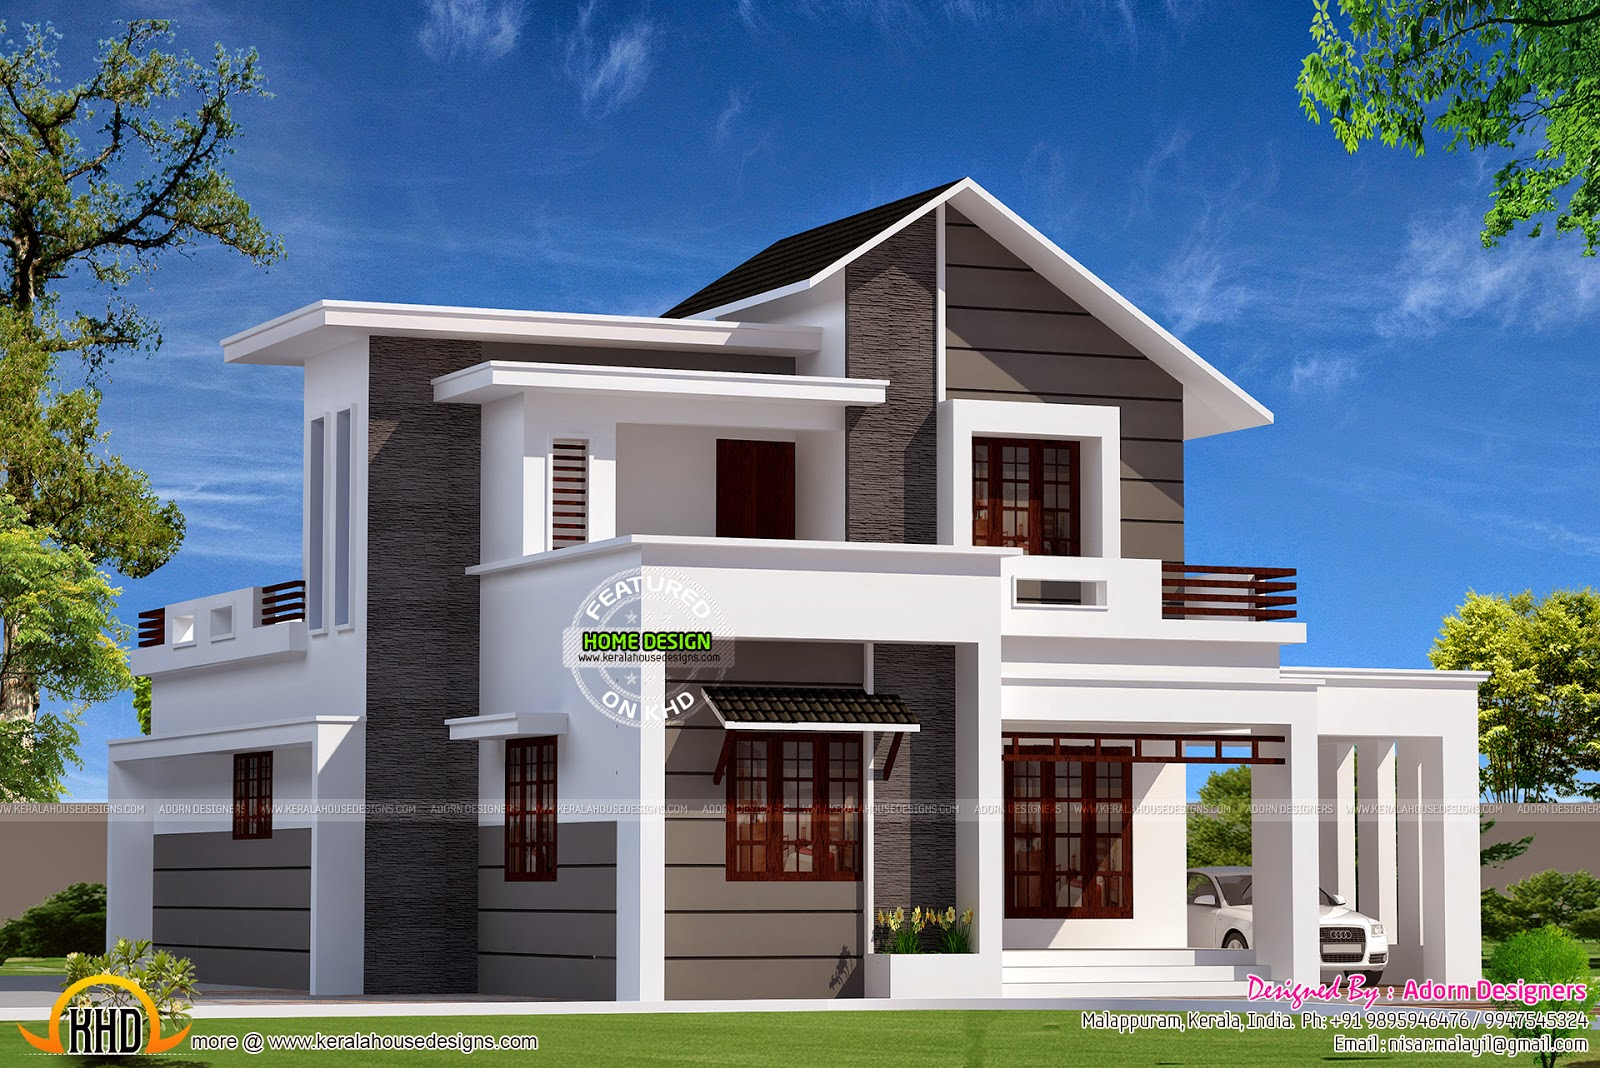 Home Design 1500 Sq Ft - HomeRiview